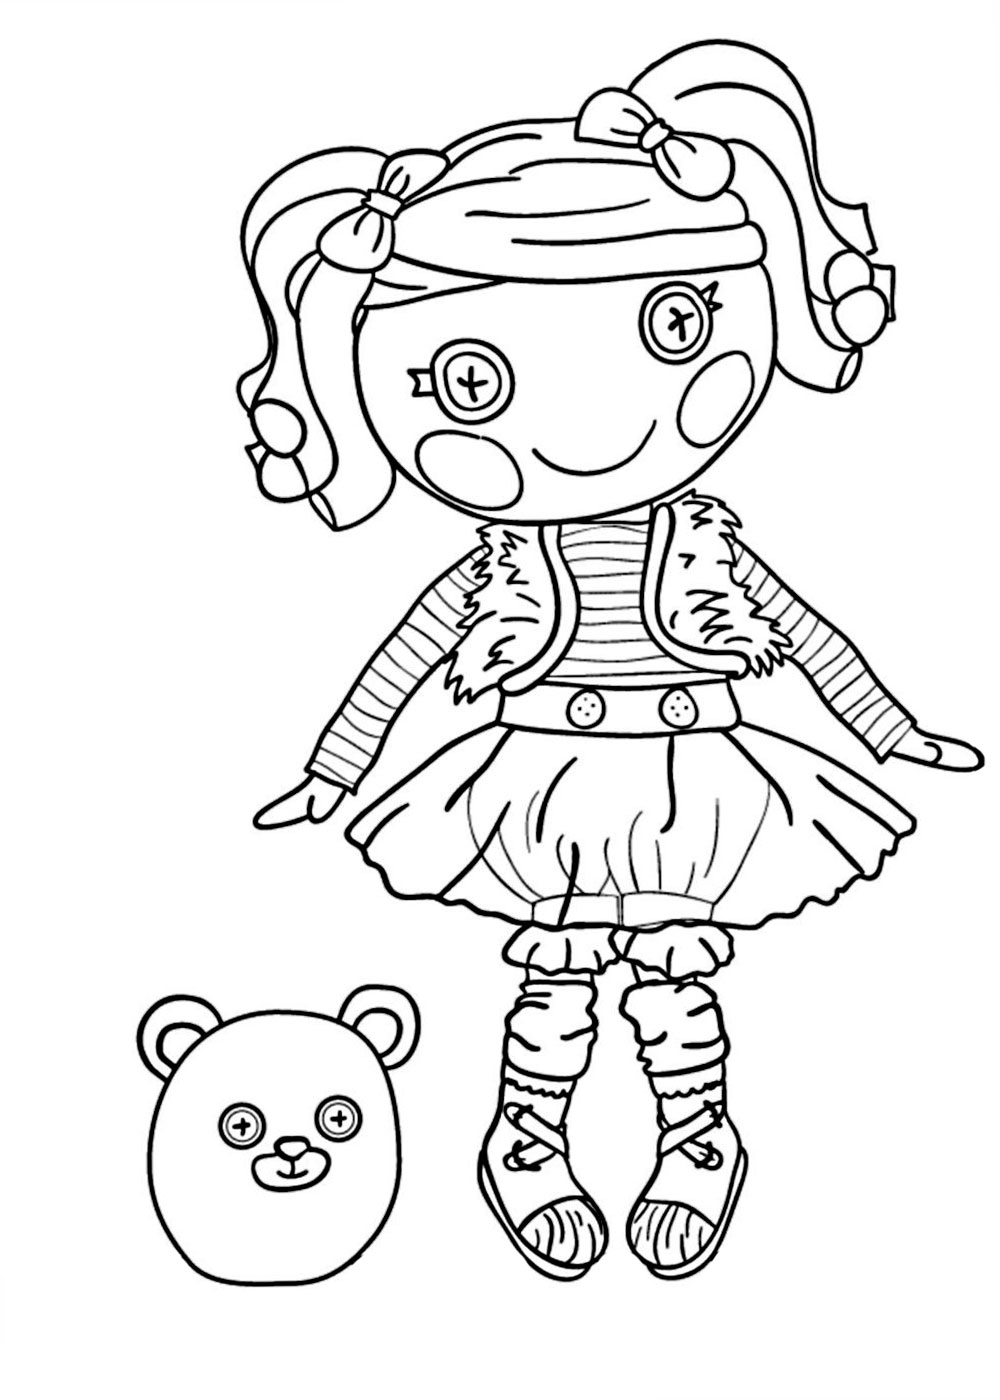 Lalaloopsy coloring pages for girls. to print for free